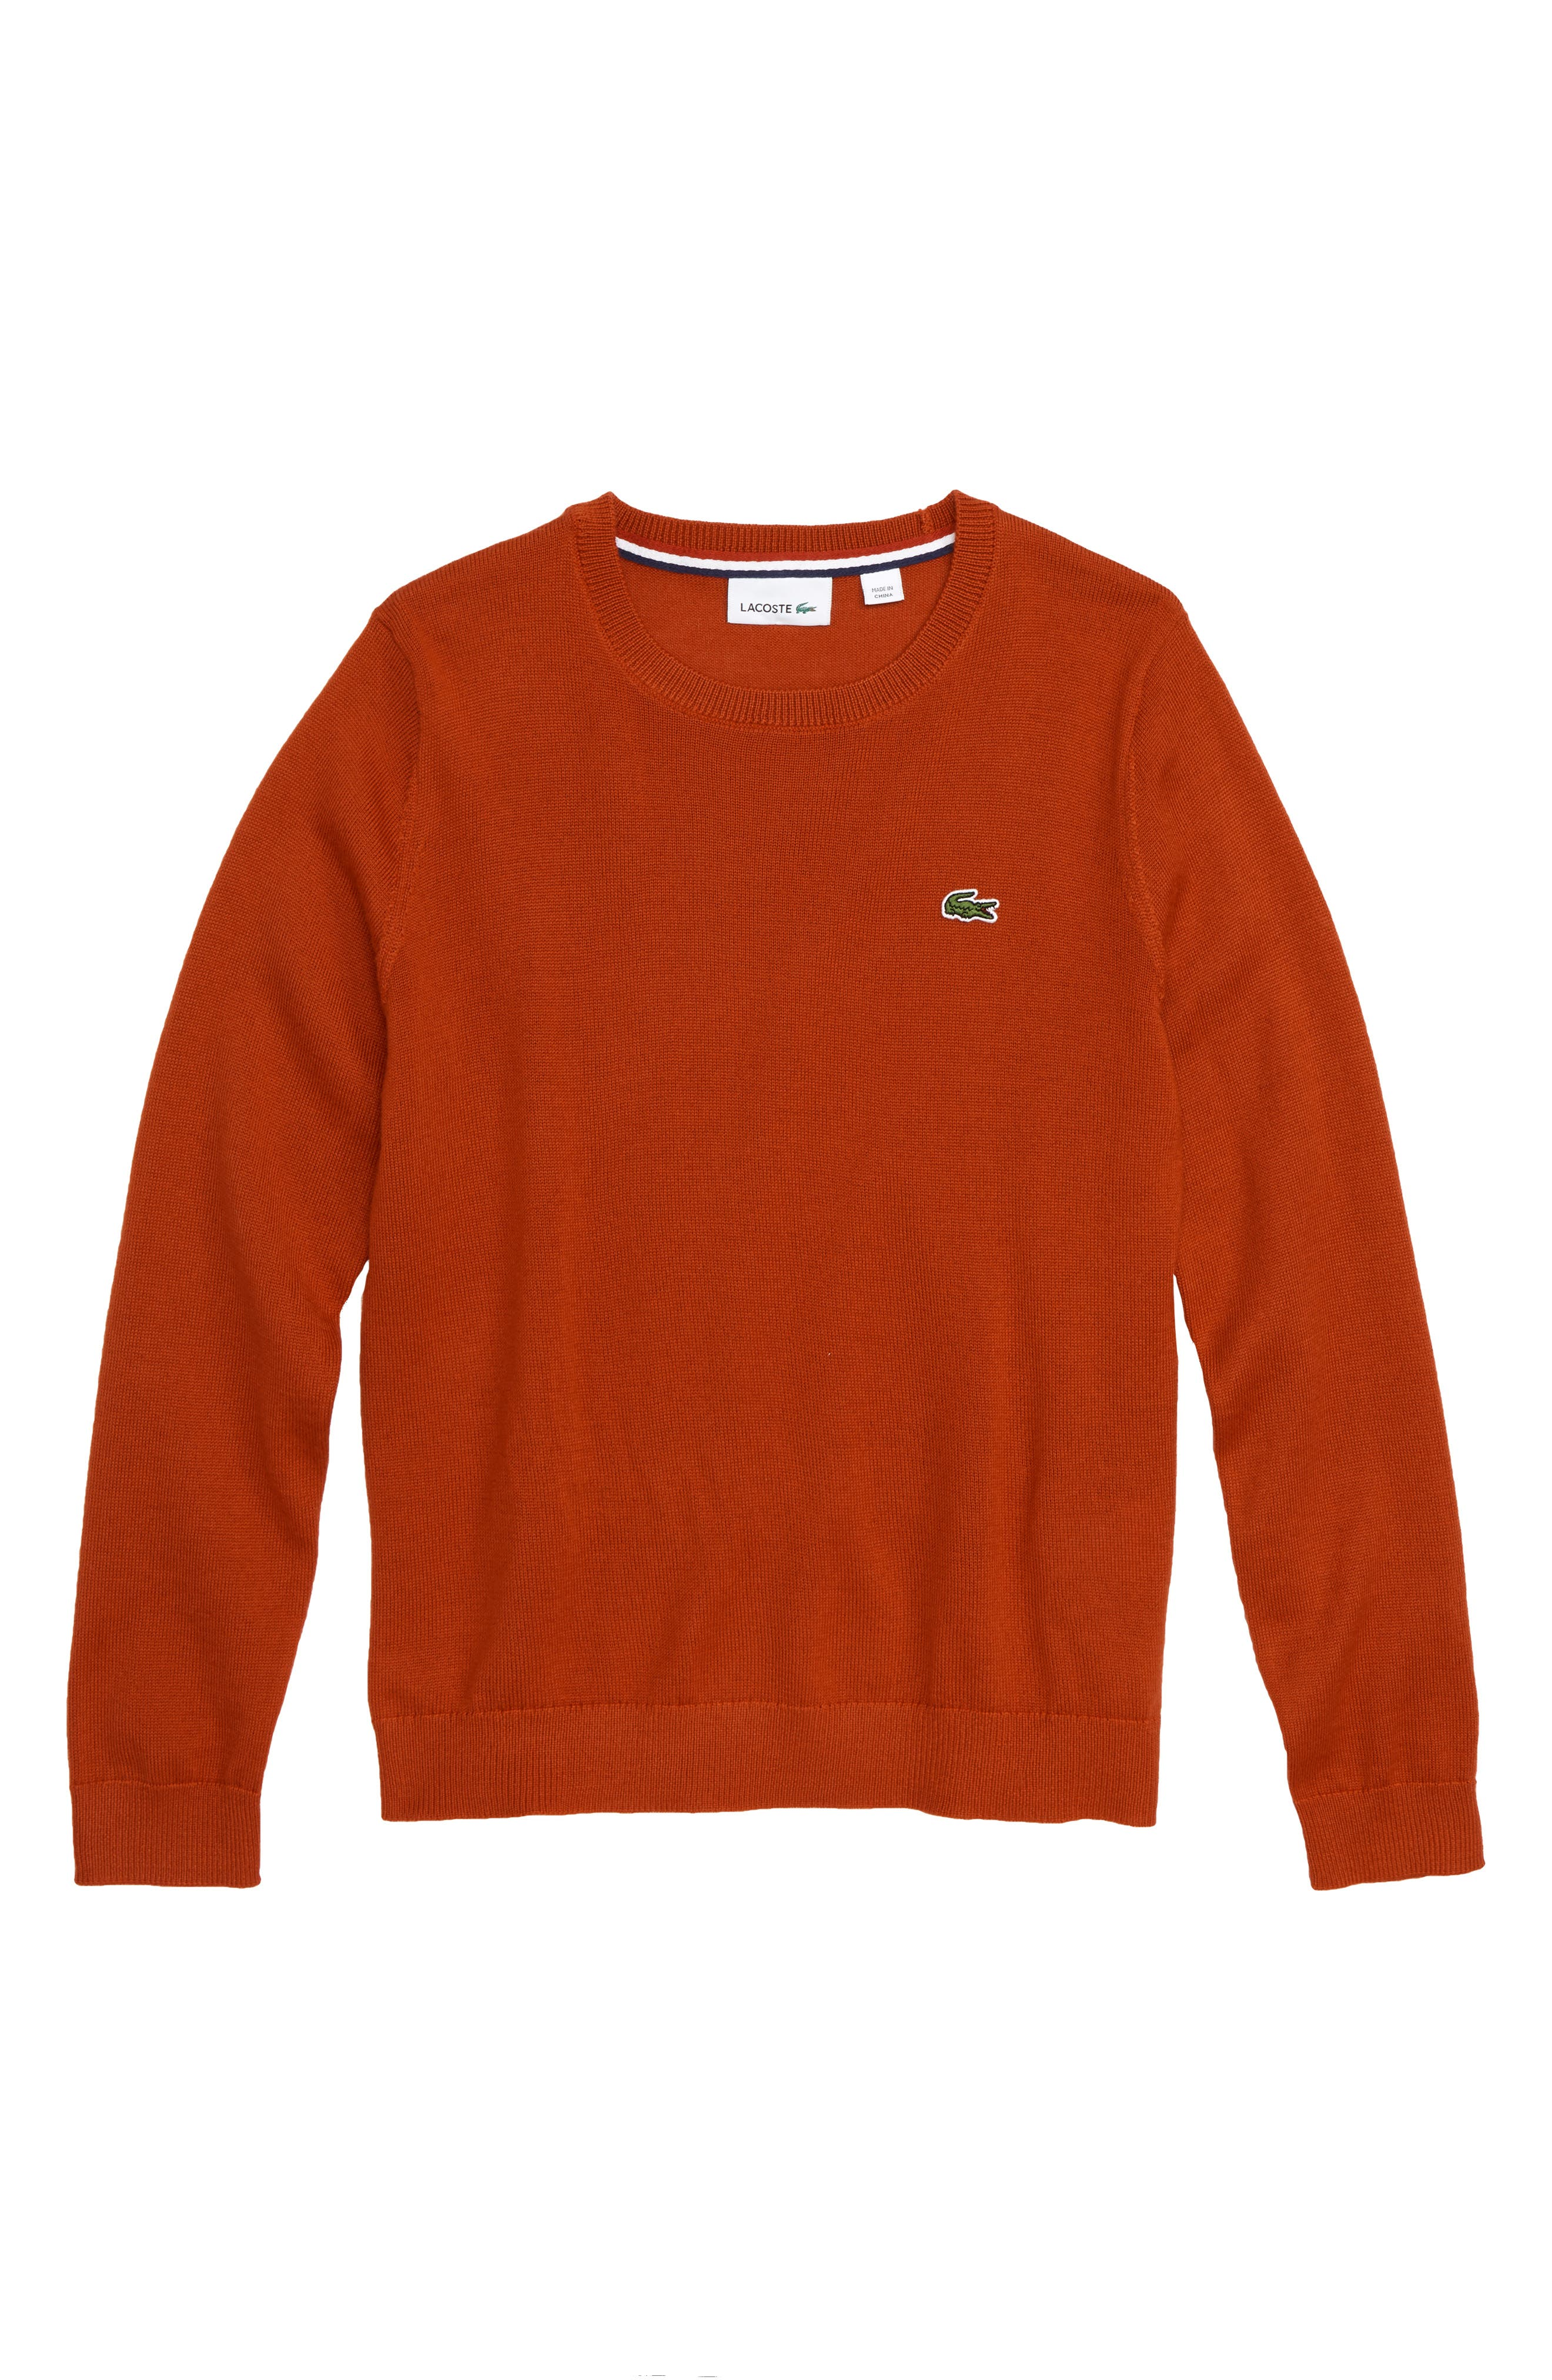 Crewneck Sweater,                         Main,                         color, LIGHTHOUSE RED